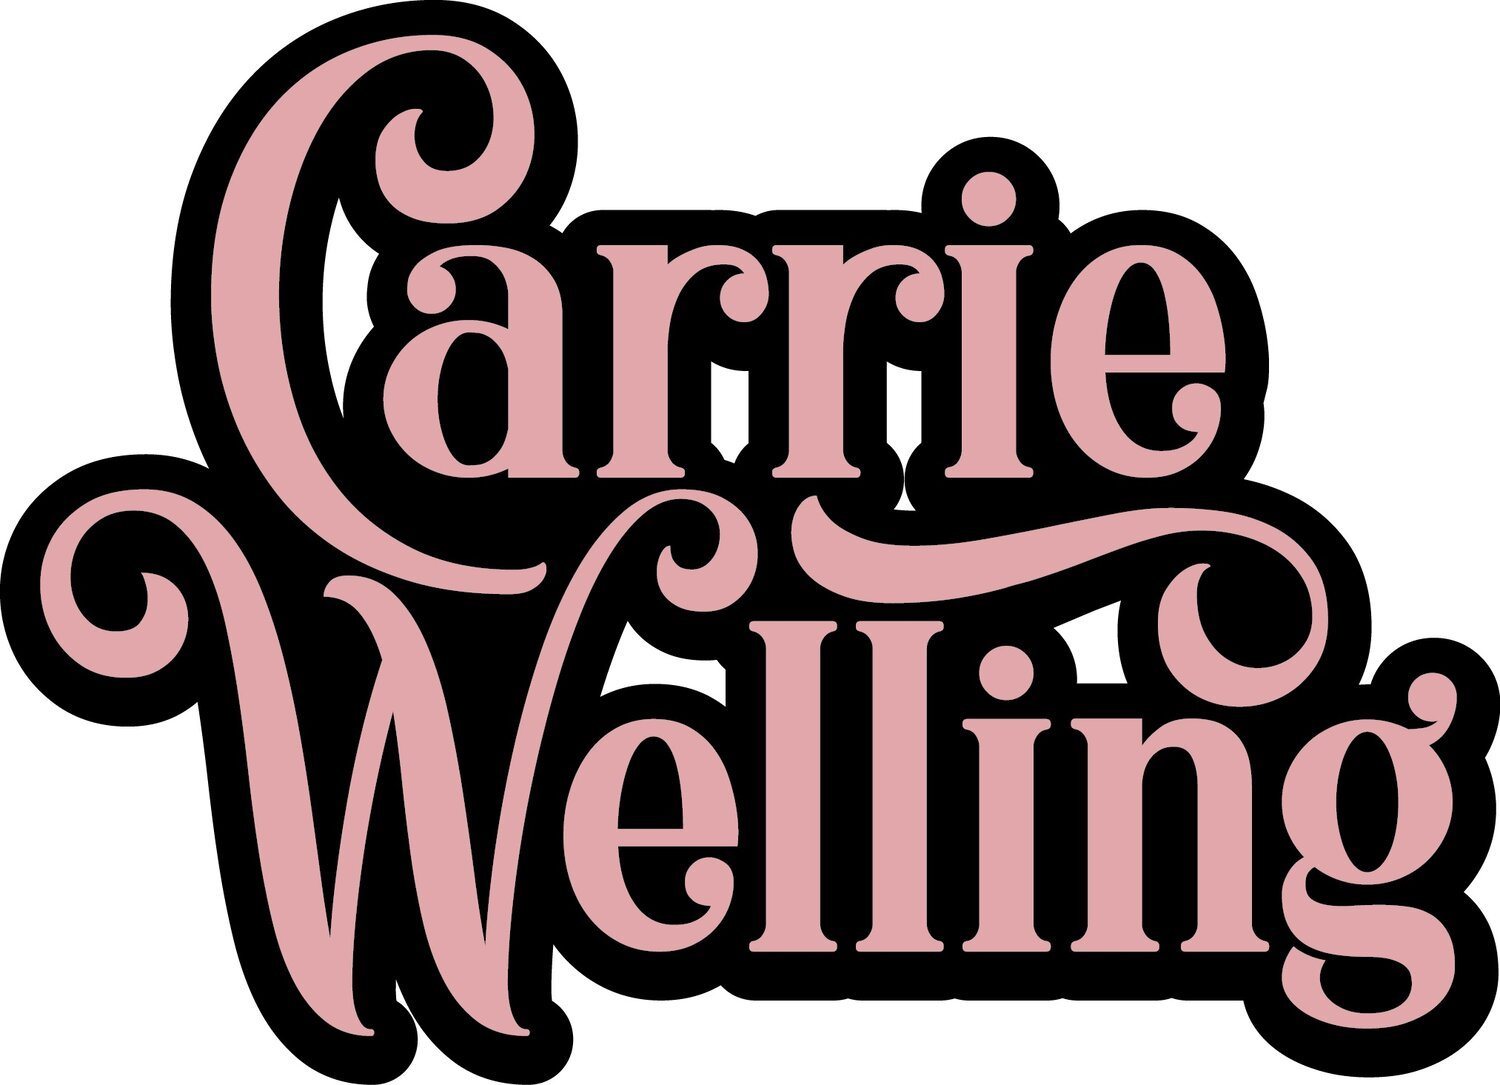 CARRIE WELLING